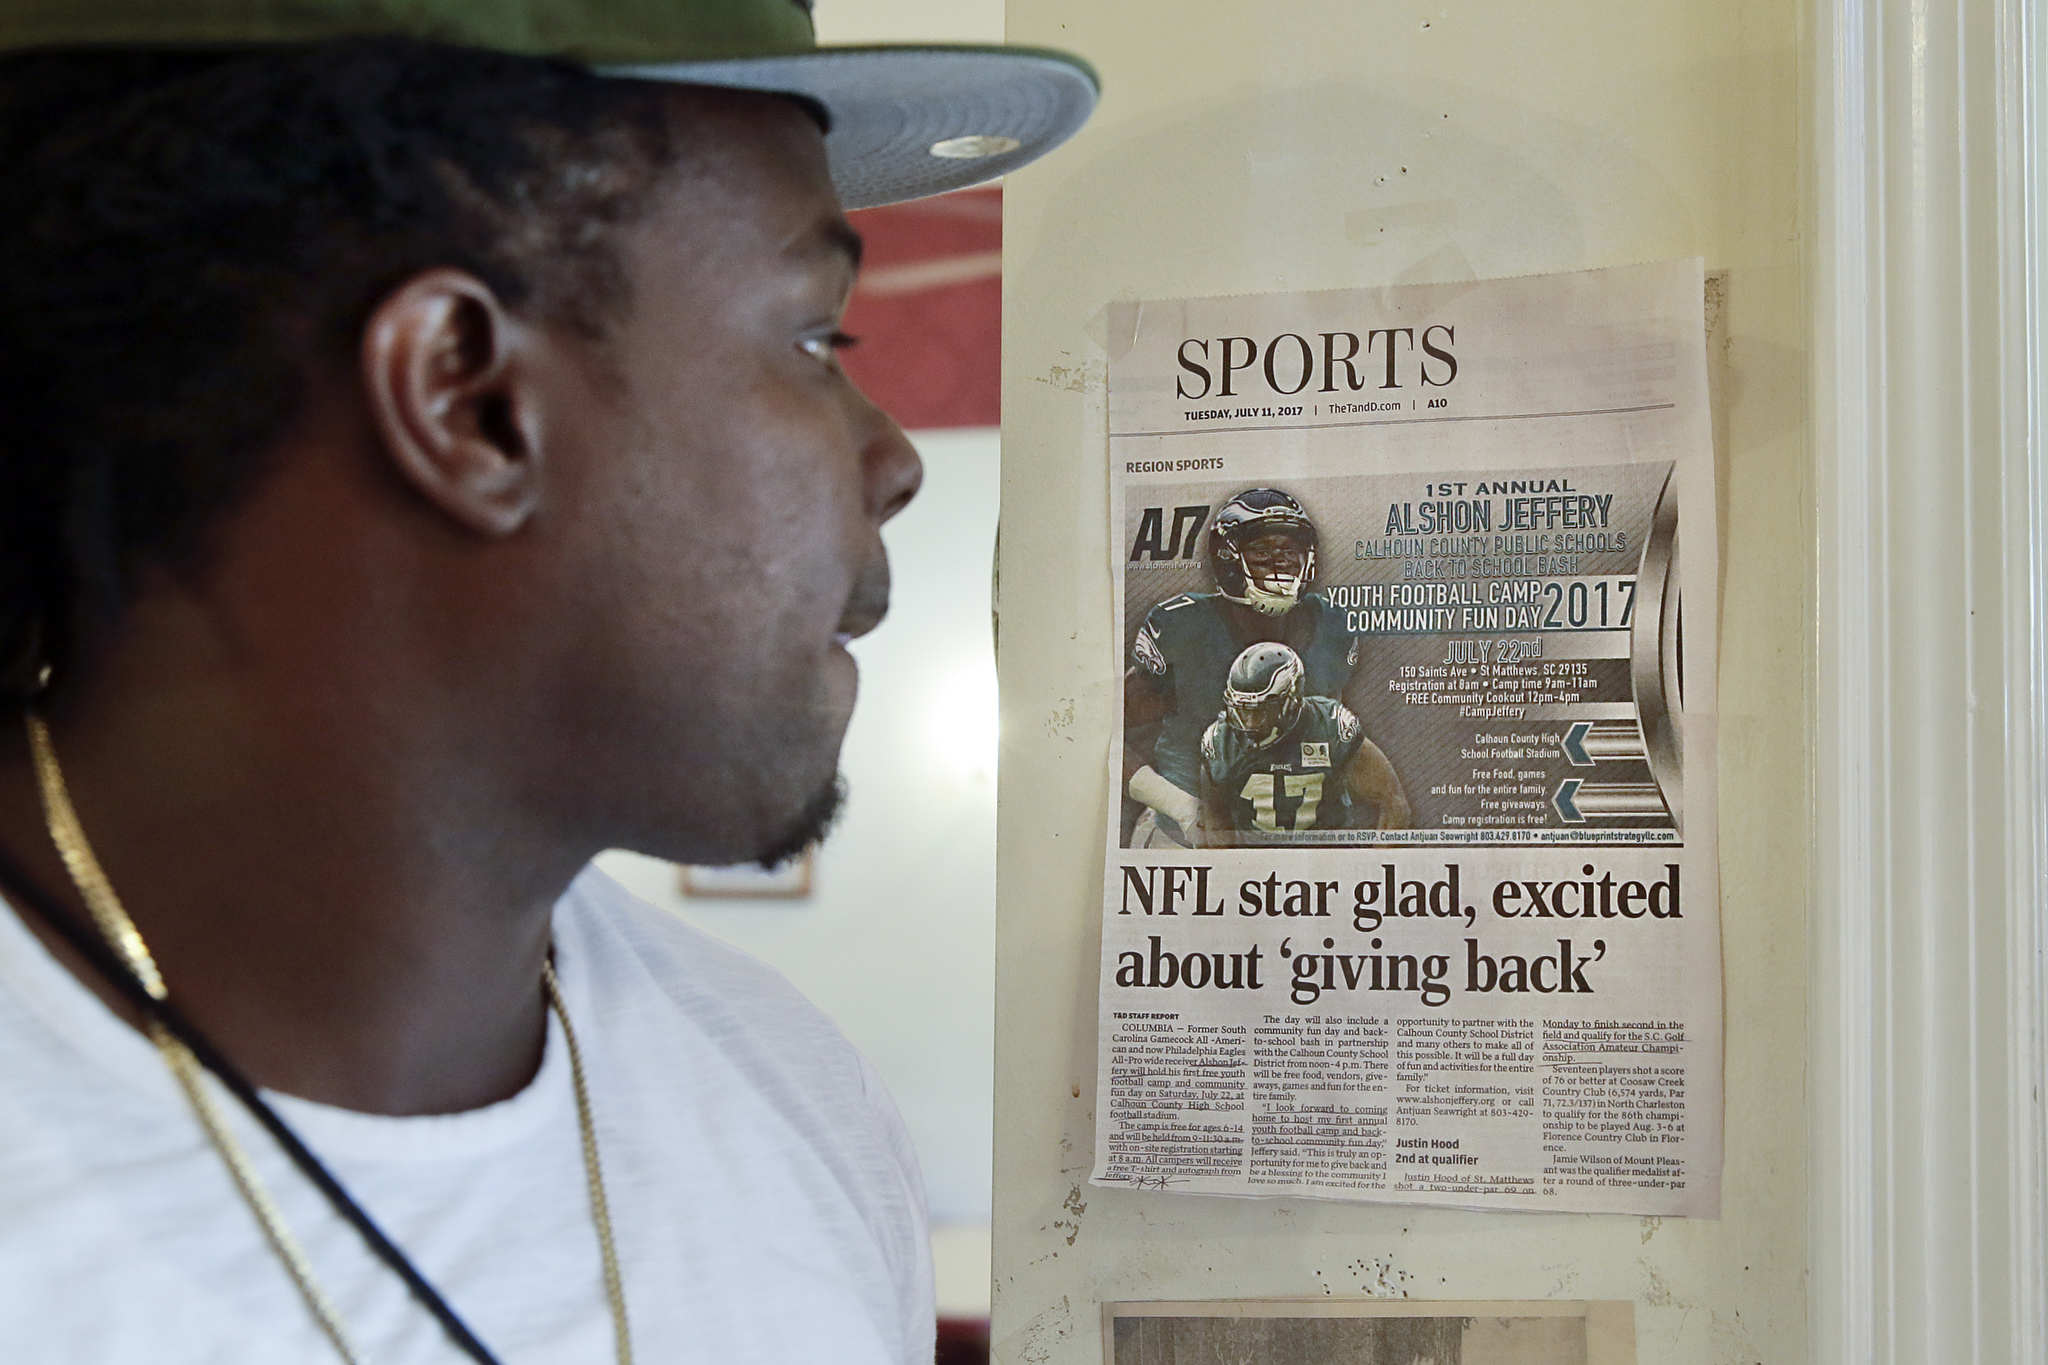 Charles Ben, Eagles wide receiver Alshon Jeffery´s older brother, pauses to look at a newspaper article about his brother that hangs by the door at the Town and Country Restaurant in downtown St. Matthews, South Carolina.